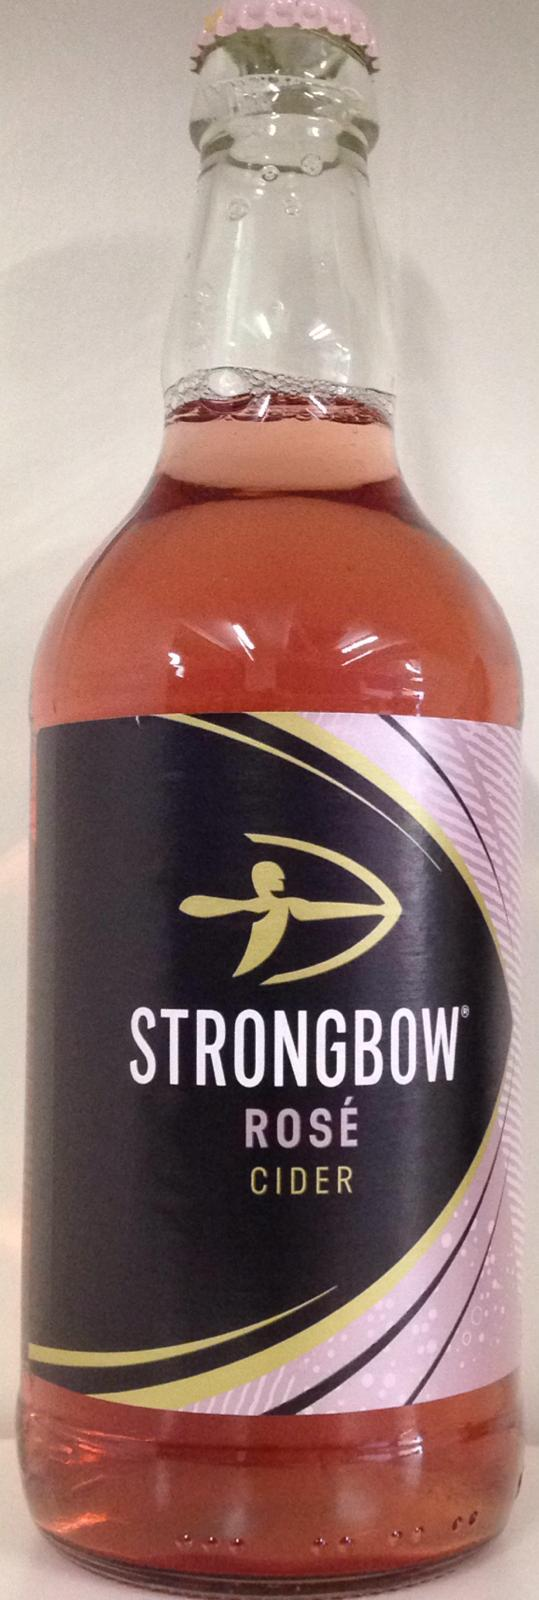 Strongbow Rose Cider 500ml